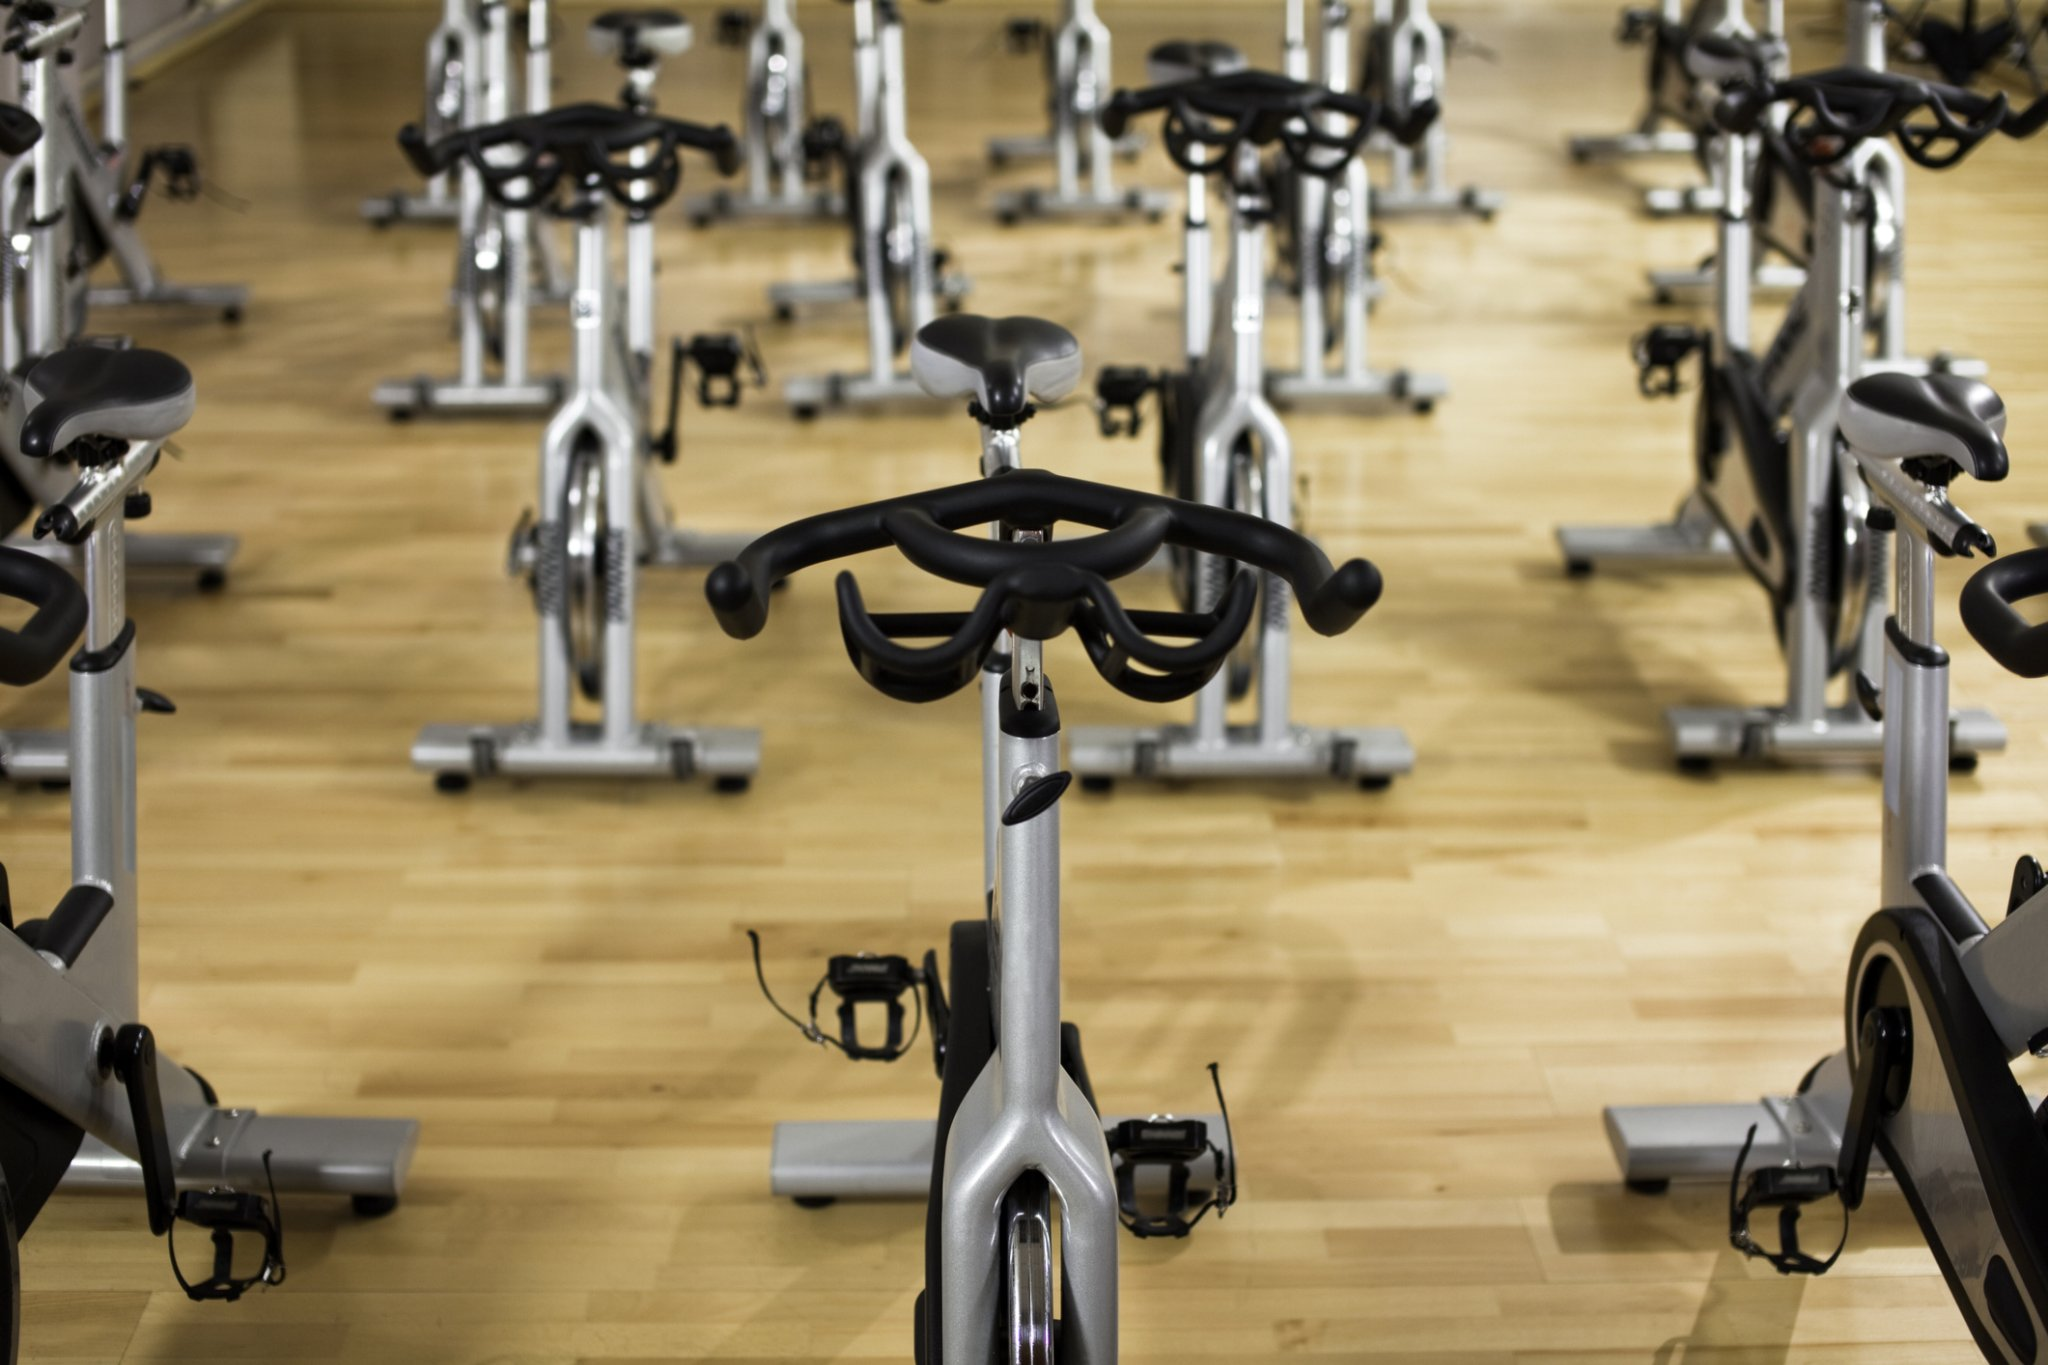 Coronavirus outbreak linked to spin studio in Canada: officials